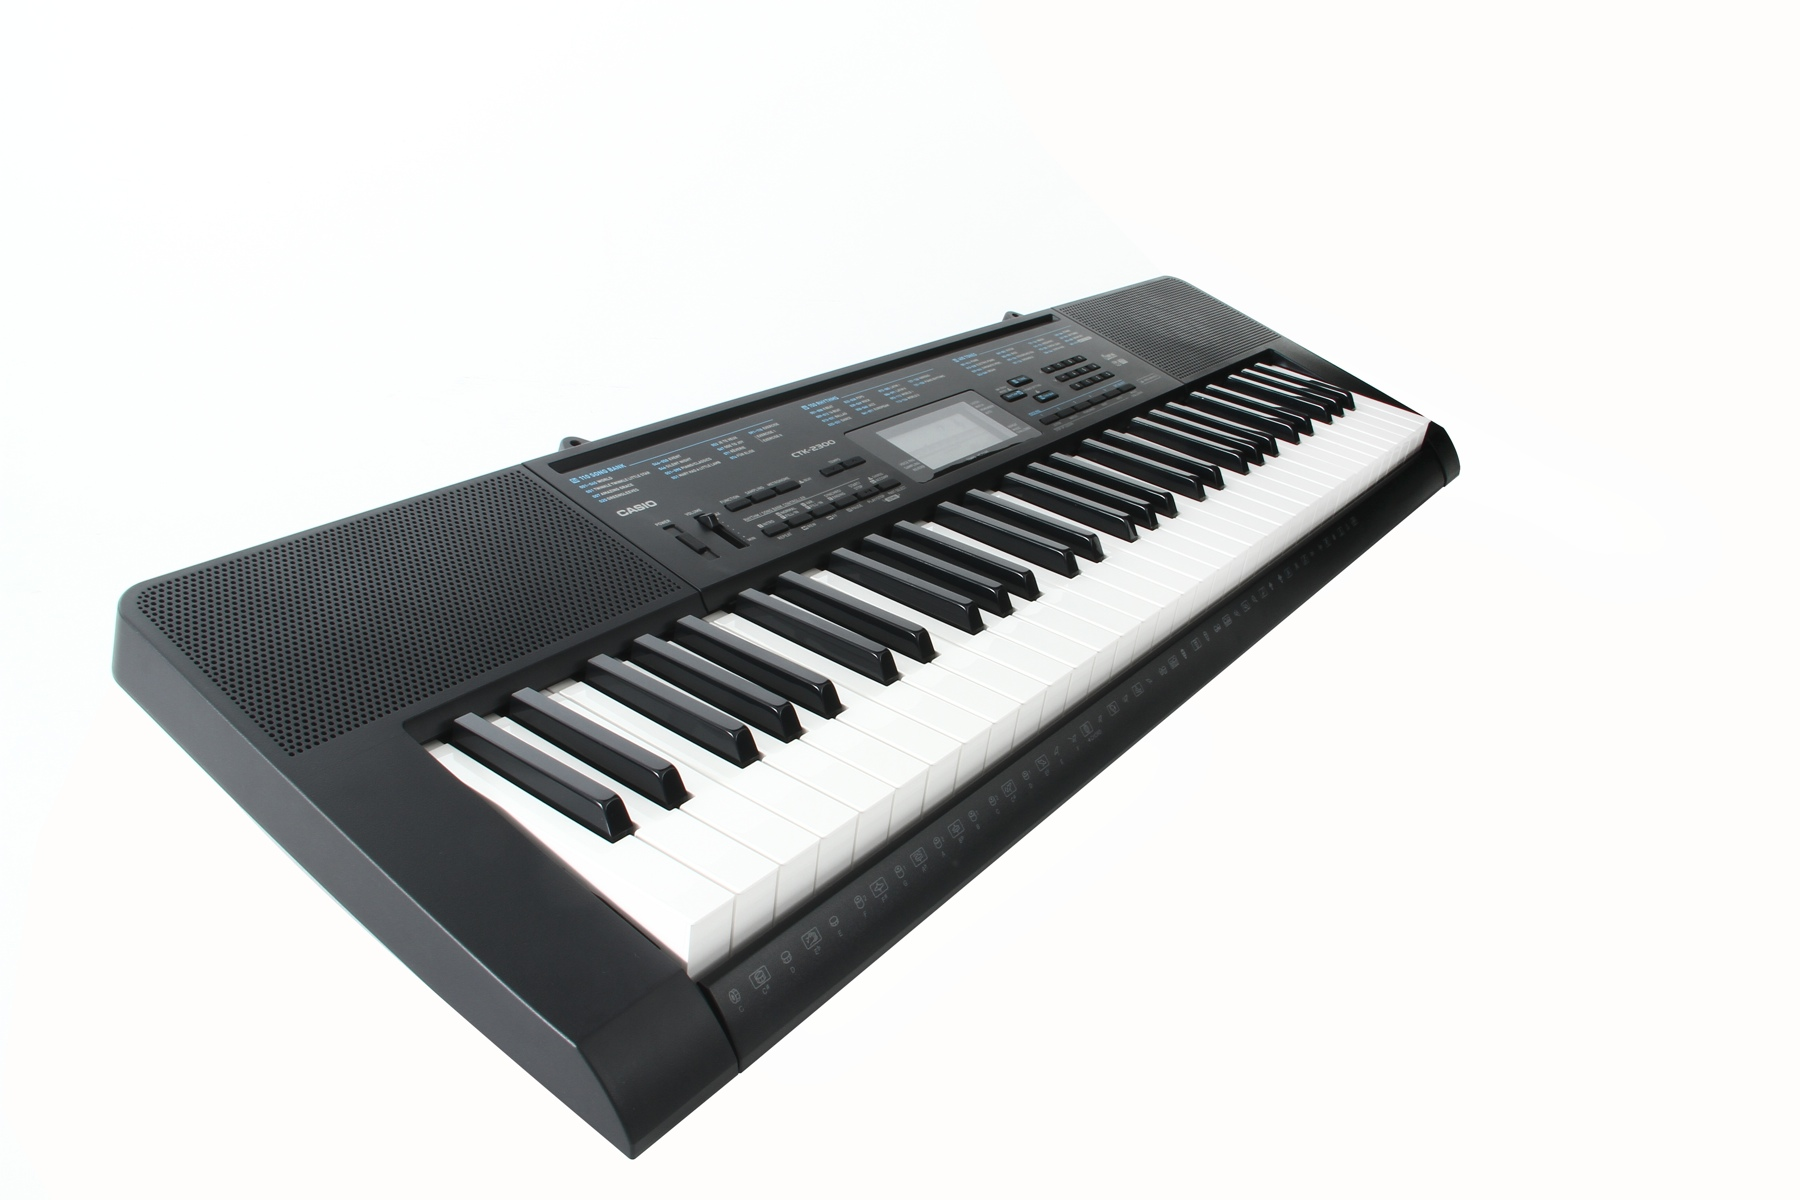 https://www.danorgan.com.vn/upload/images_products/large/Dan-organ-casio-CTK-2300-.jpg